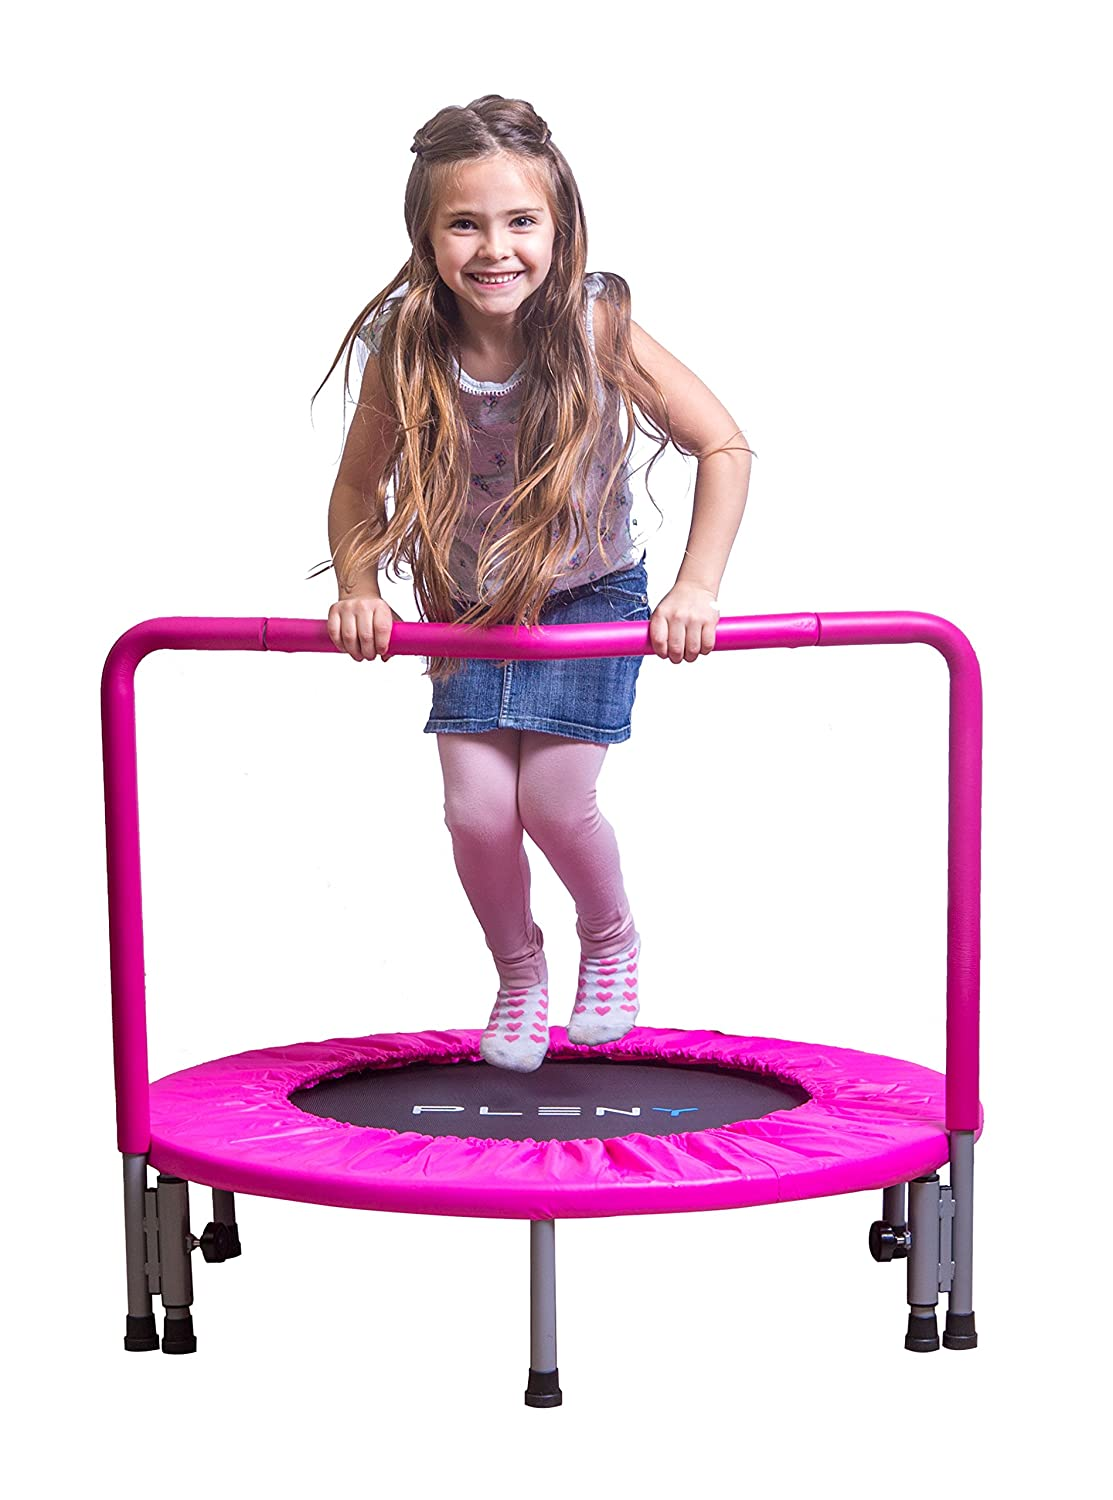 PLENY 36-Inch Kids Mini Trampoline with Handle, Safety and Durable Toddler Trampoline - 3 Colors Available